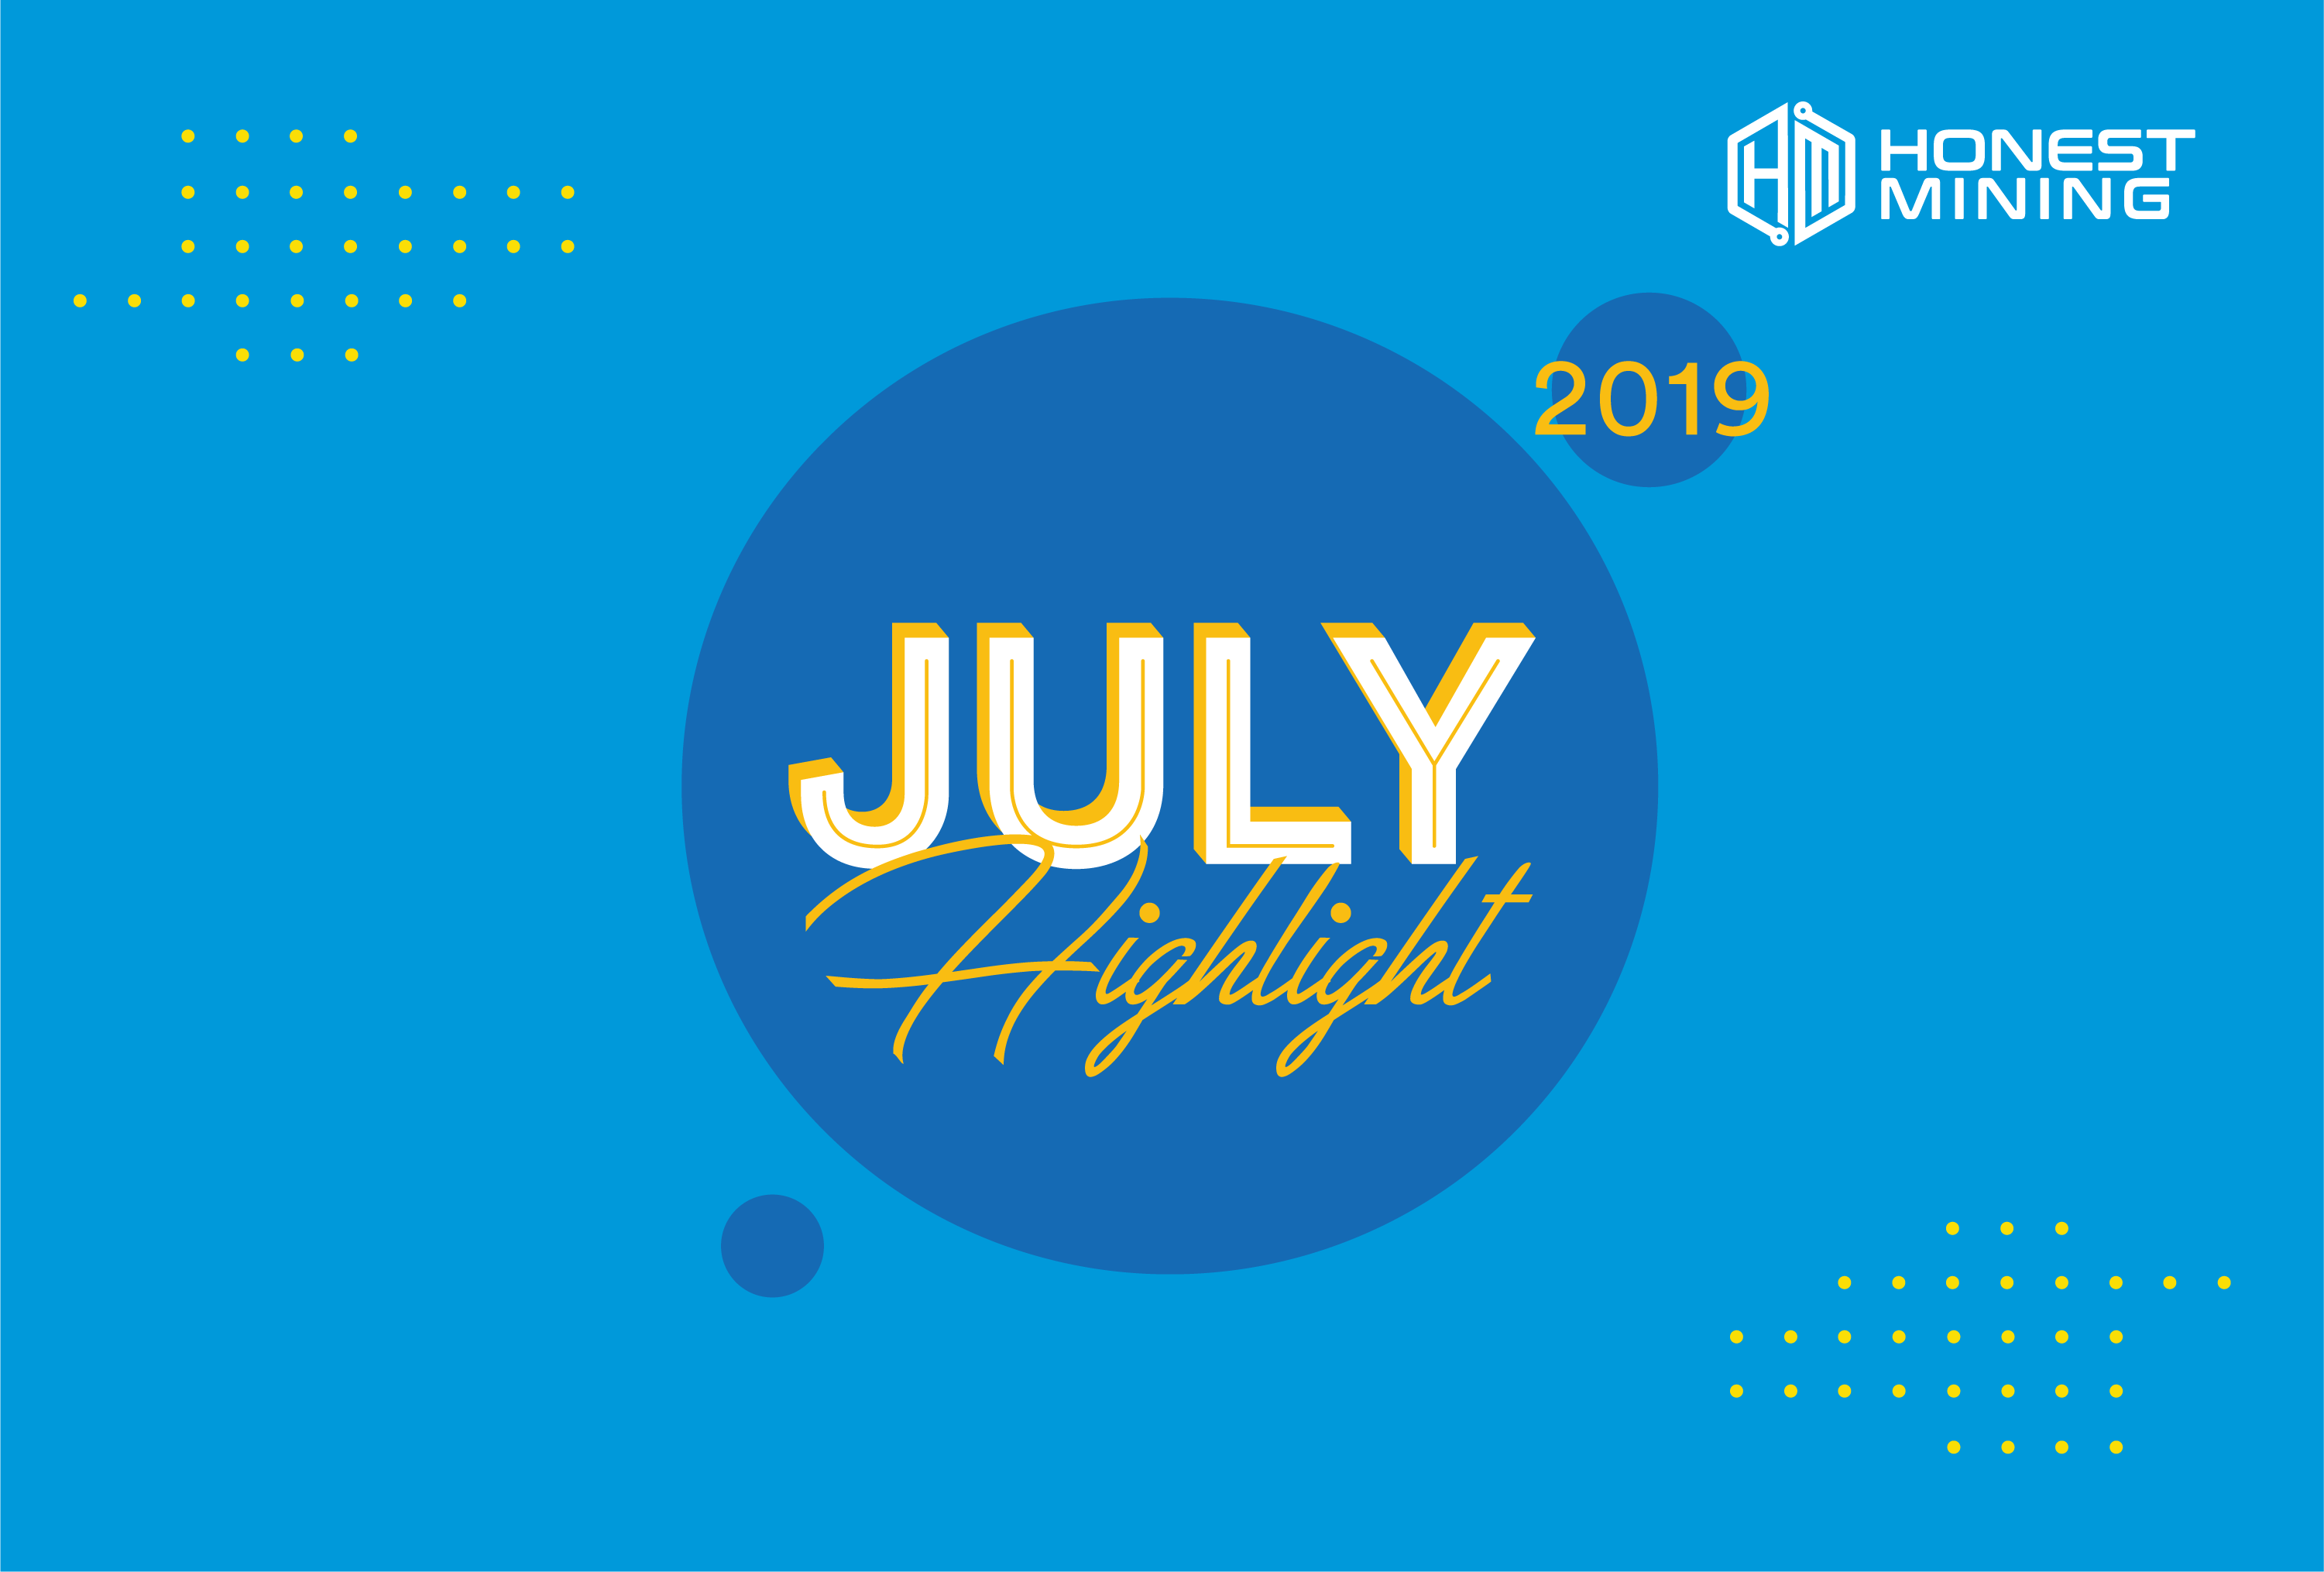 Honest Mining July 2019 Highlight